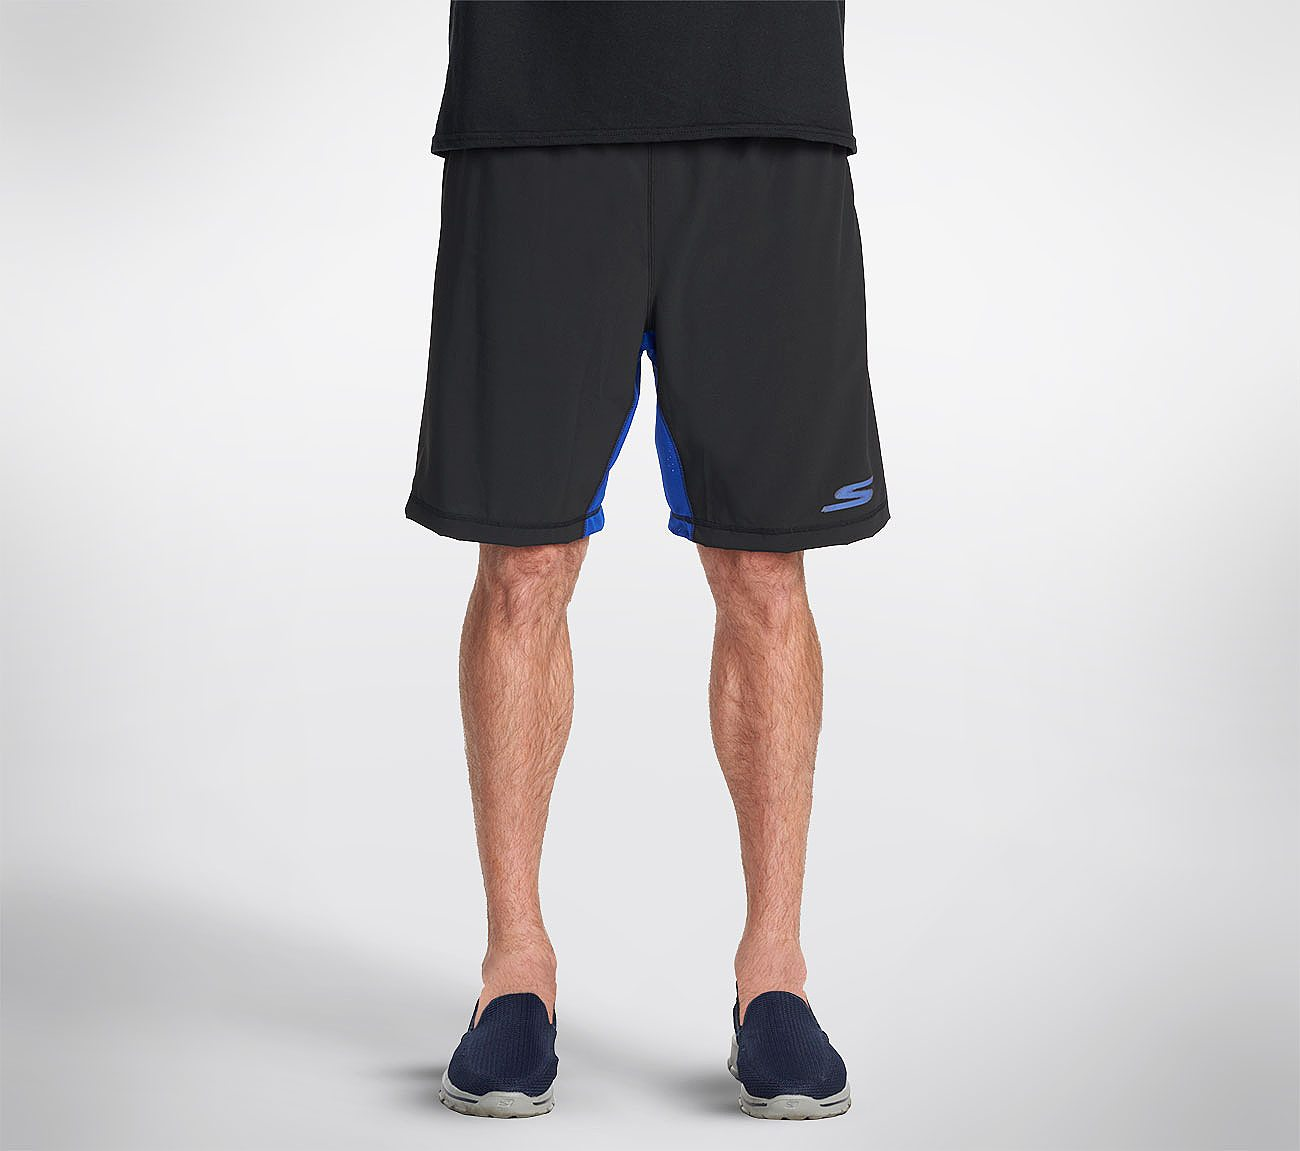 SKECHERS Inverse Shorts Shorts Shoes